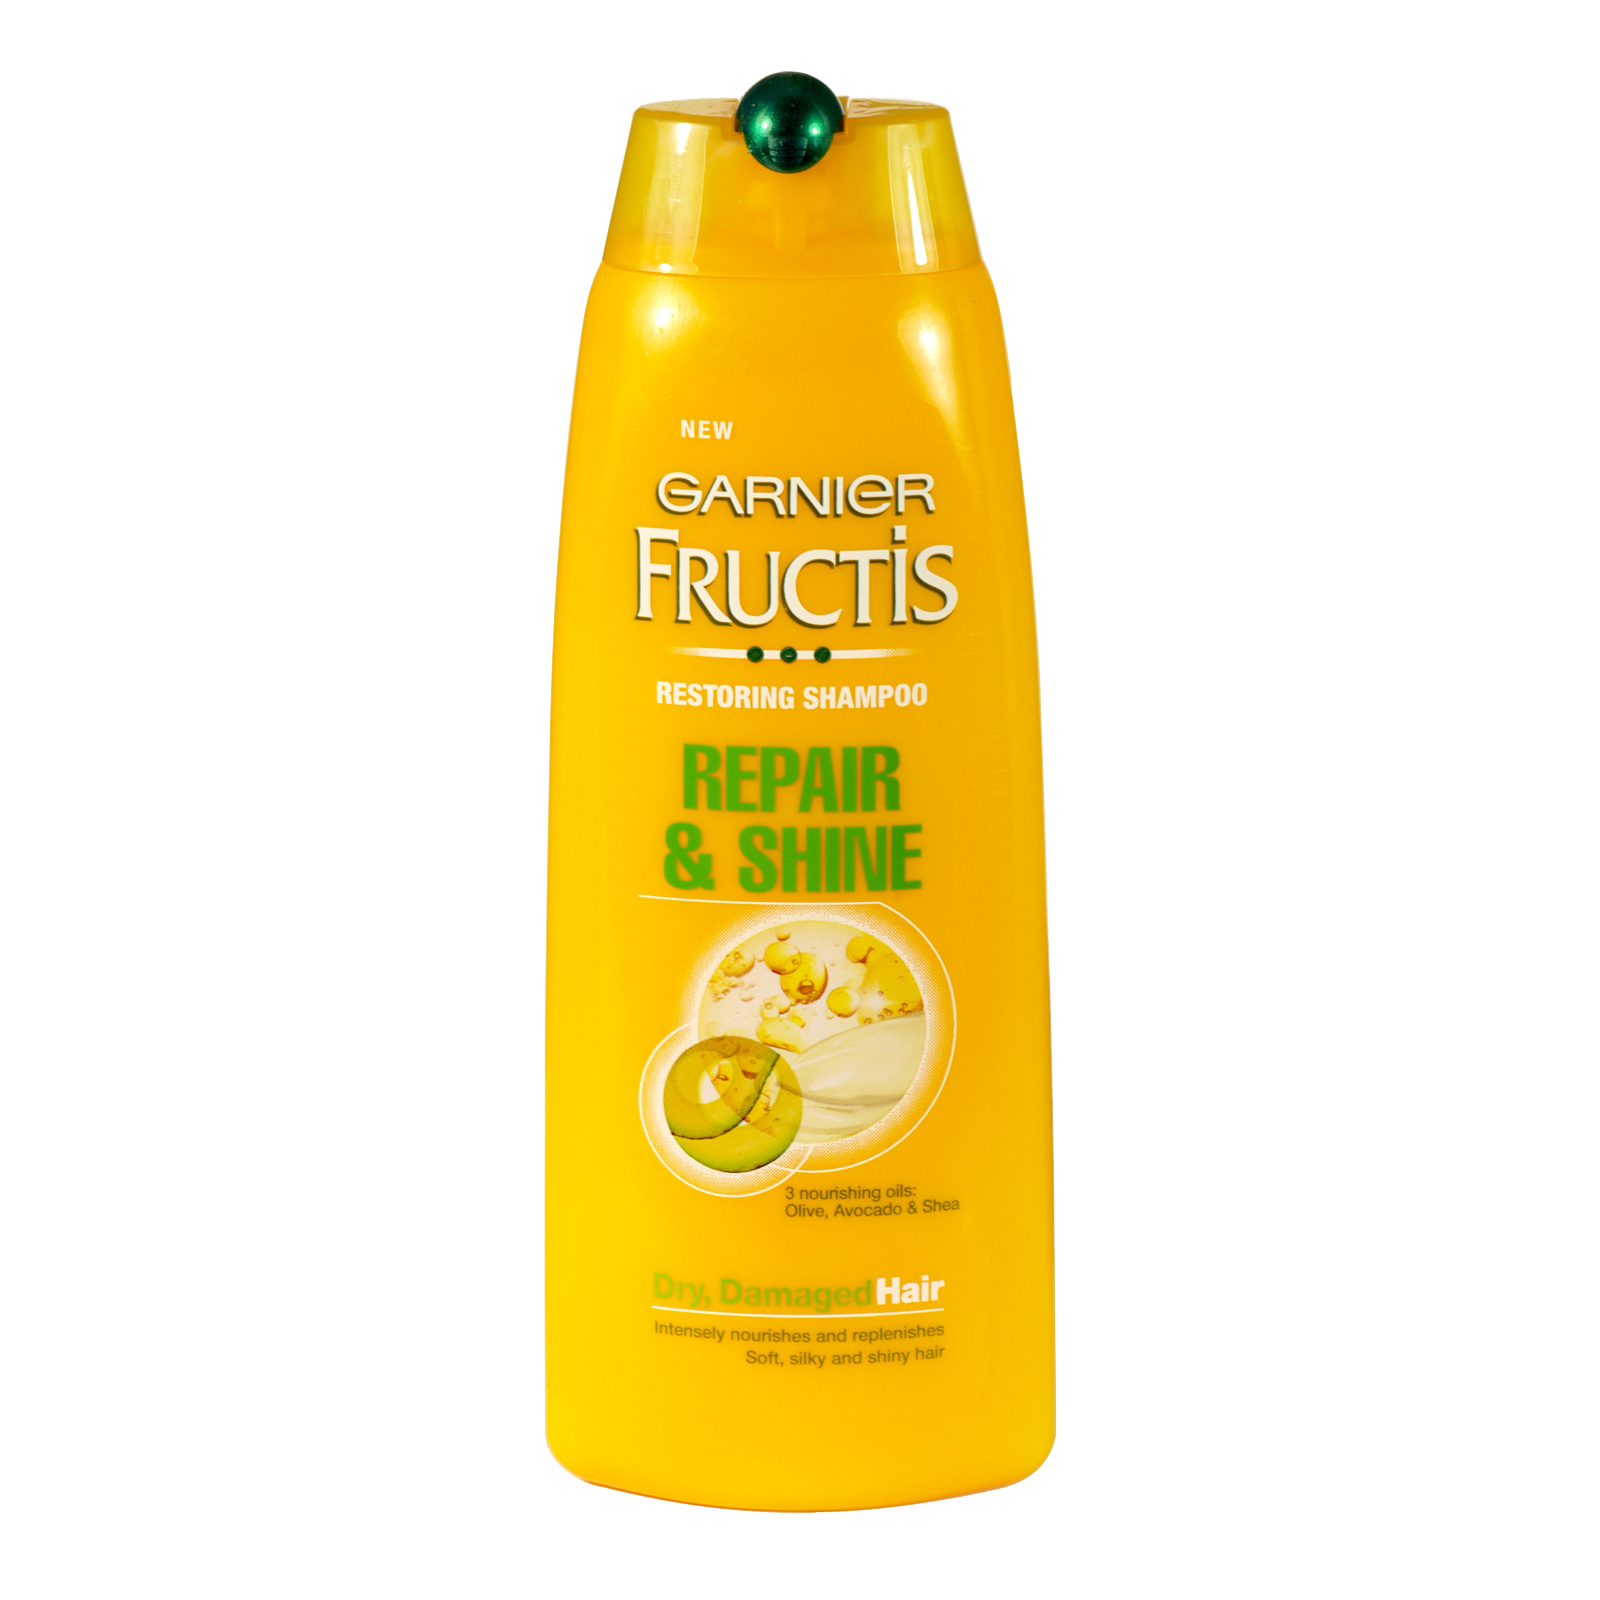 GARNIER FRUCTIS SHAMPOO 250ML REPAIR+SHINE DAMAGED HAIR X6